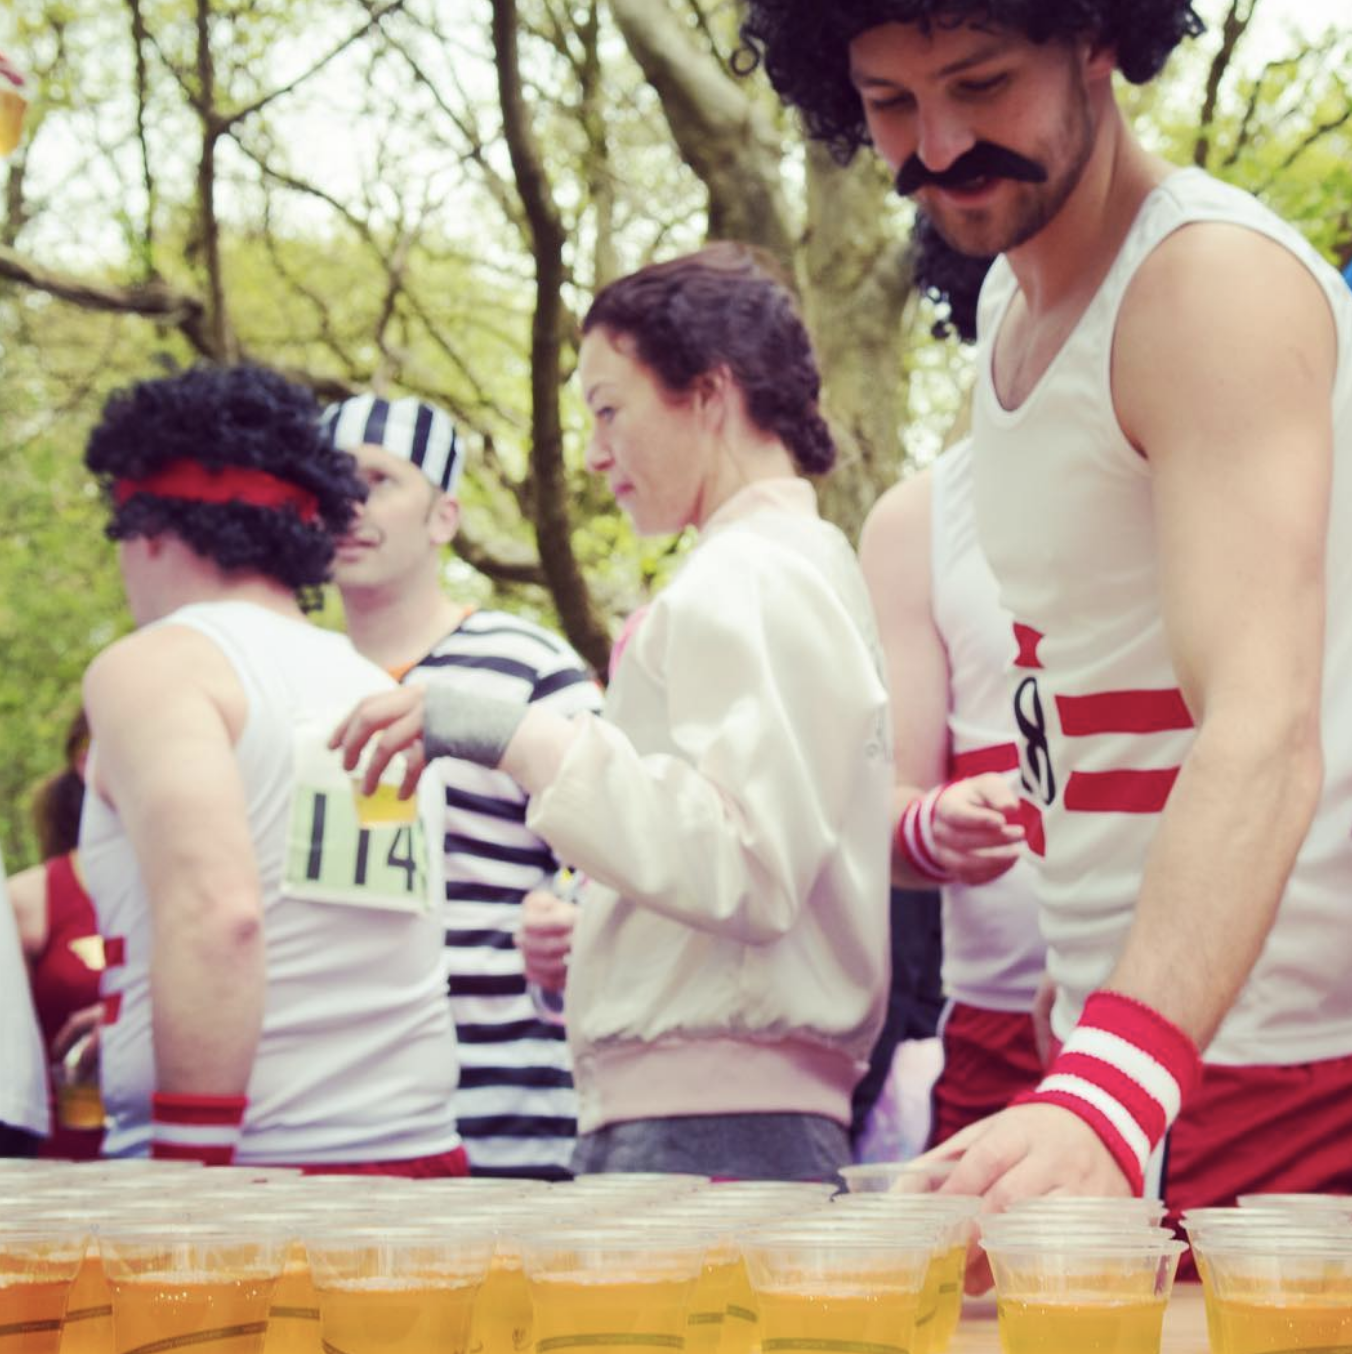 Ciderthon runners in fancy dress grabbing a cider